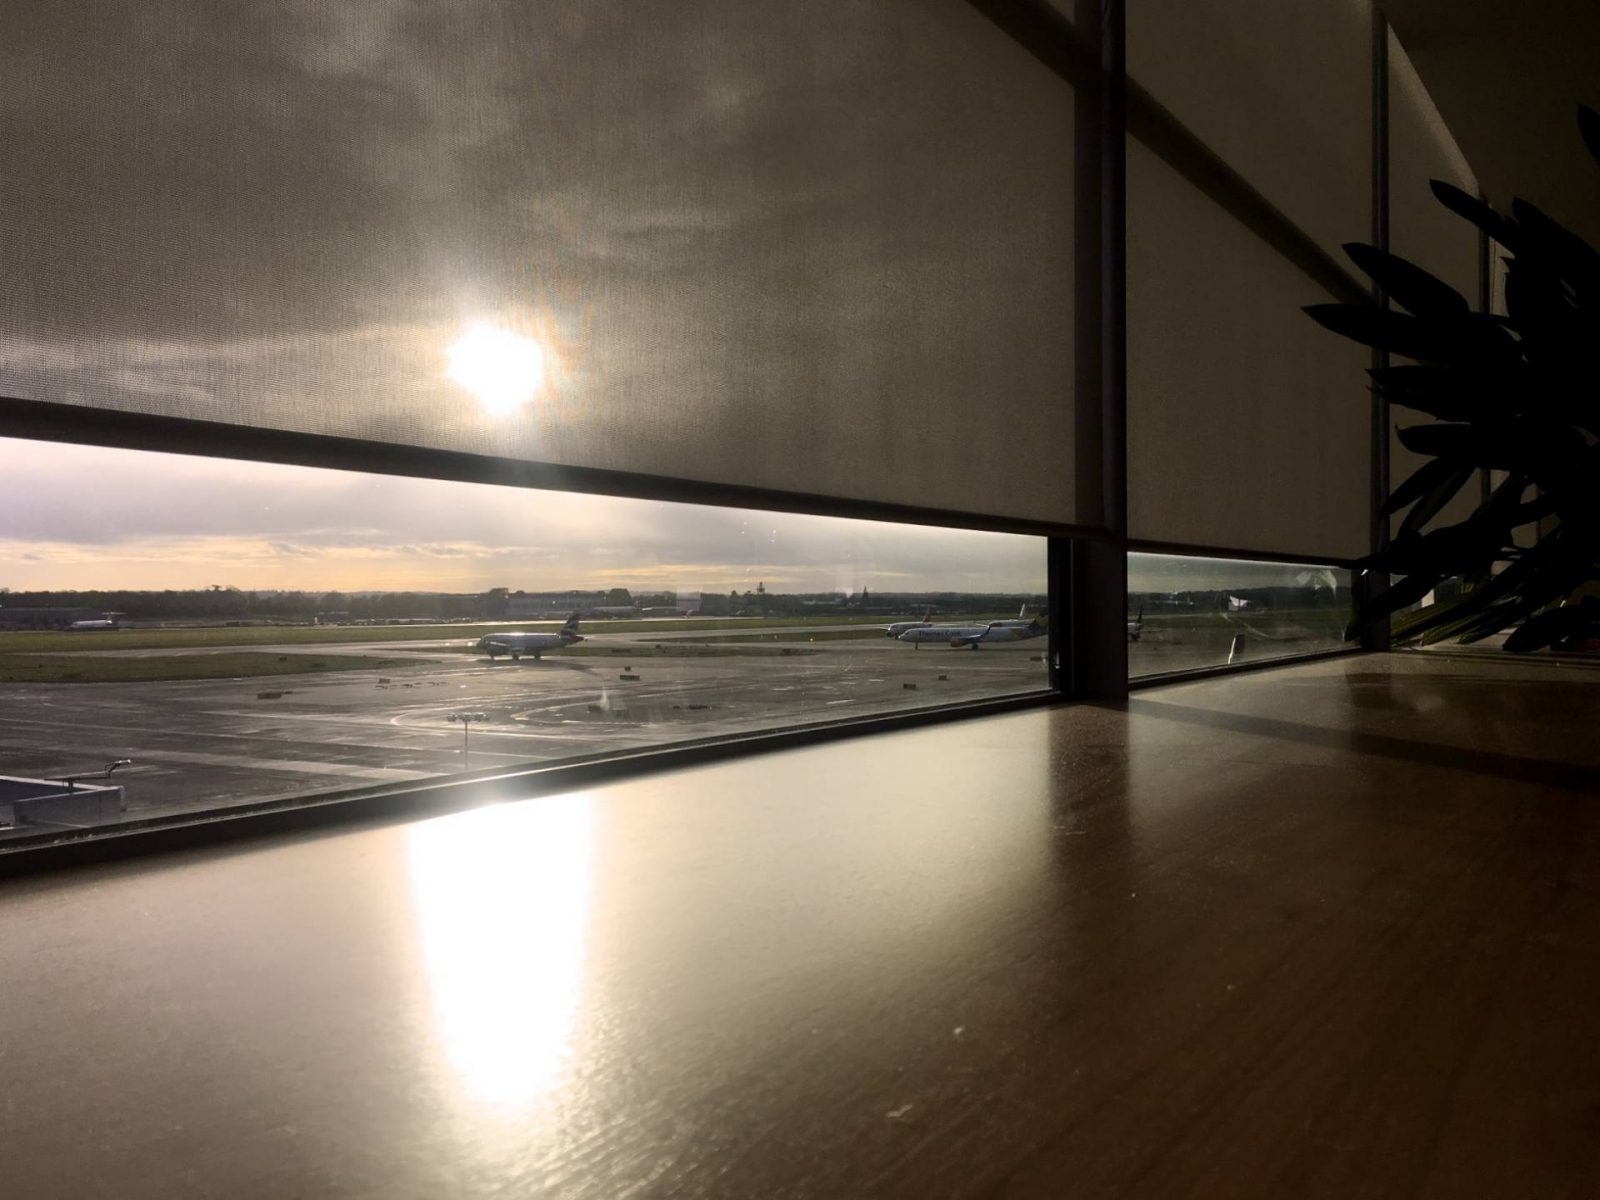 stopping over in style with no1 lounges, gatwick airport;